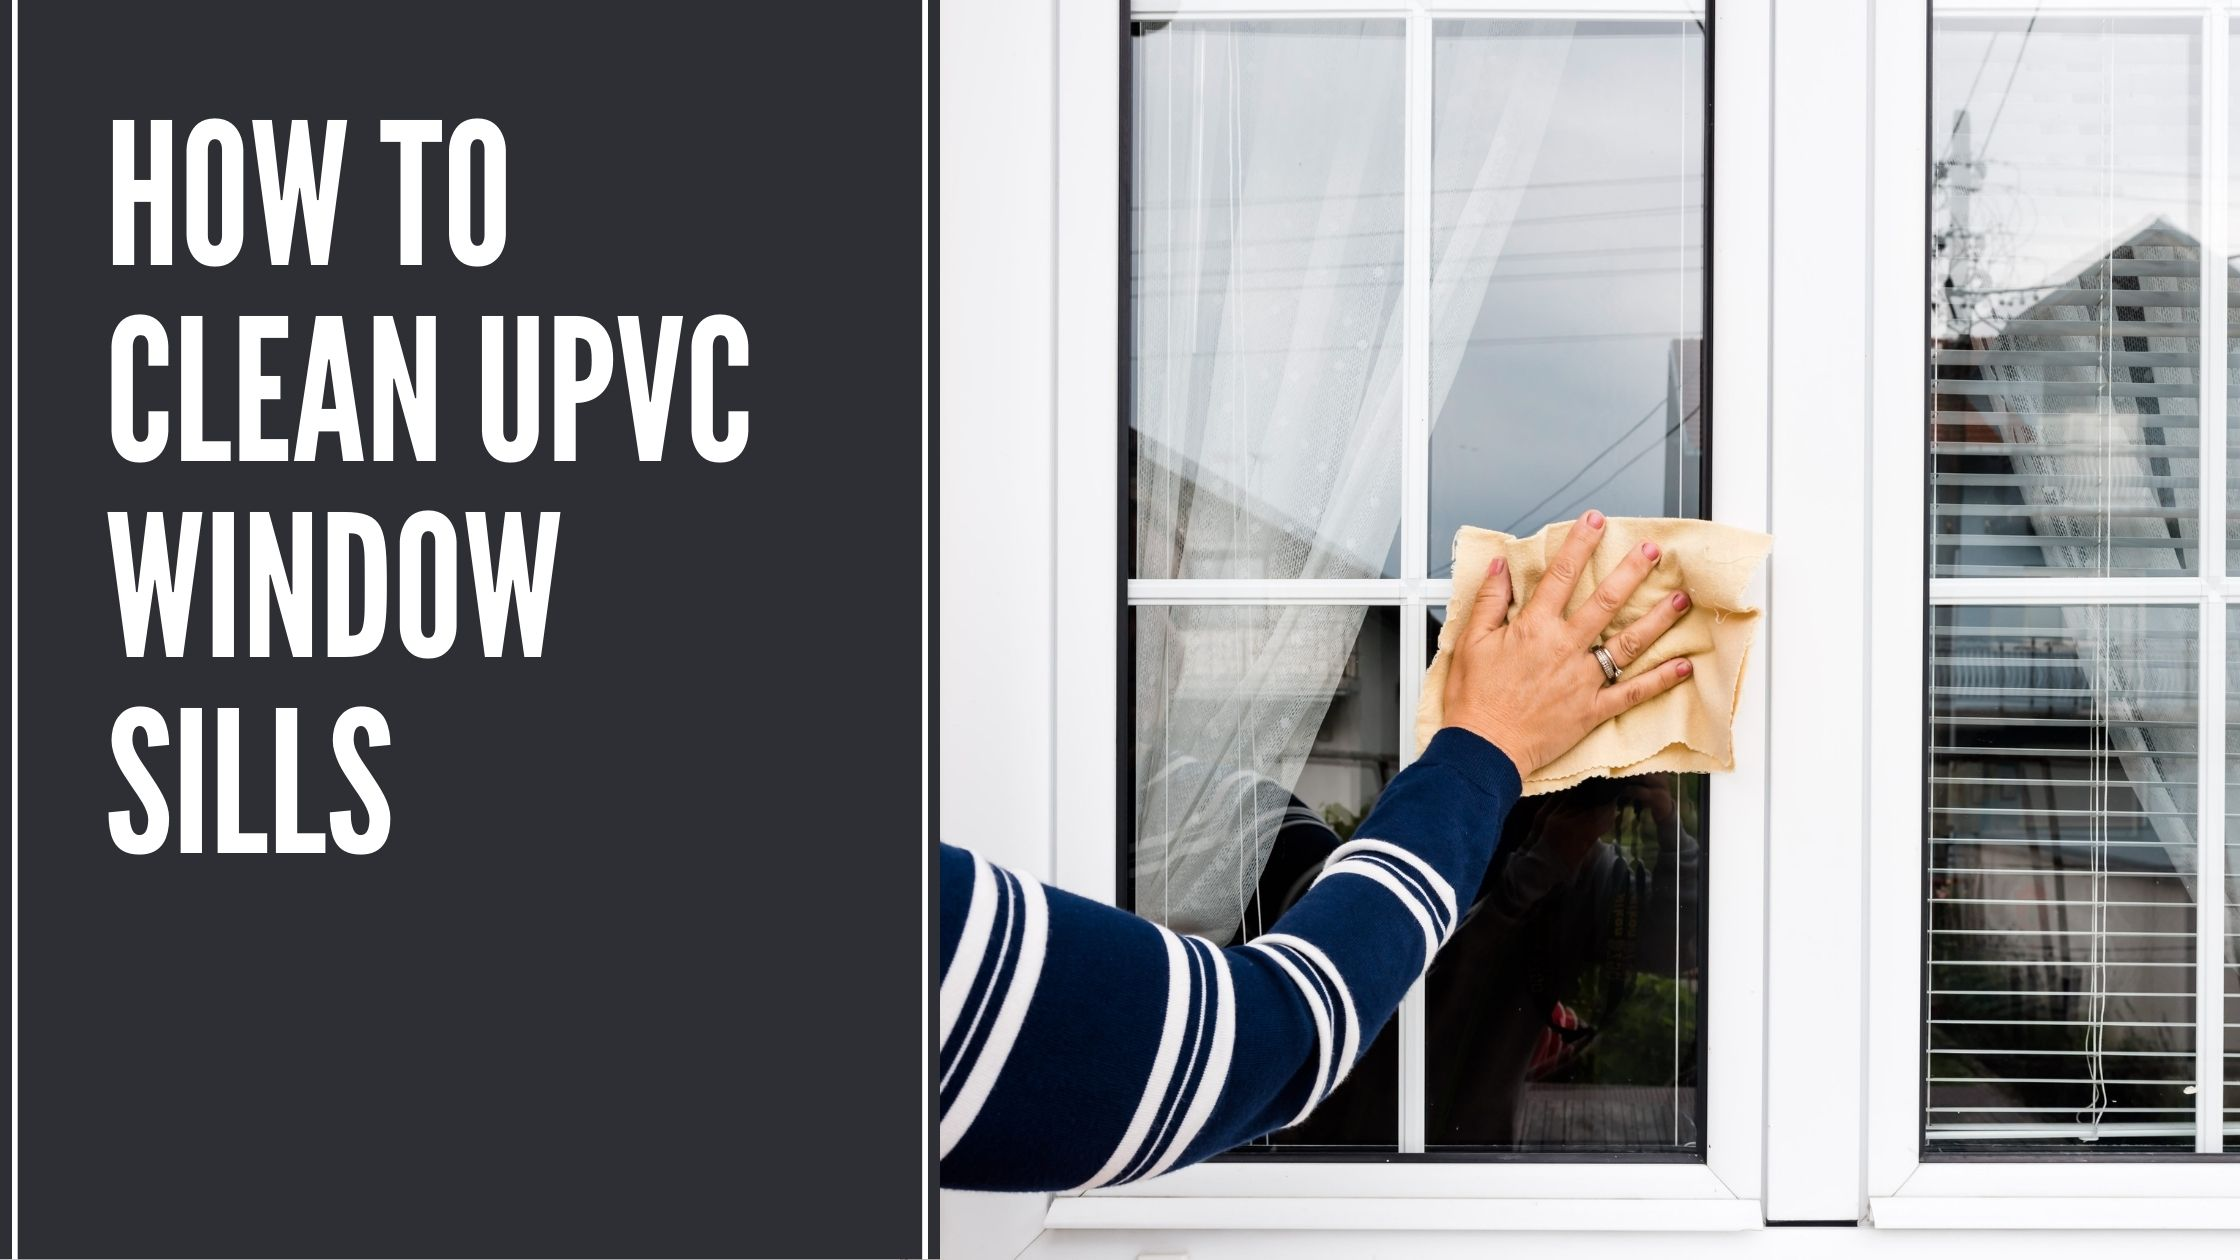 How to Clean uPVC Window Sills